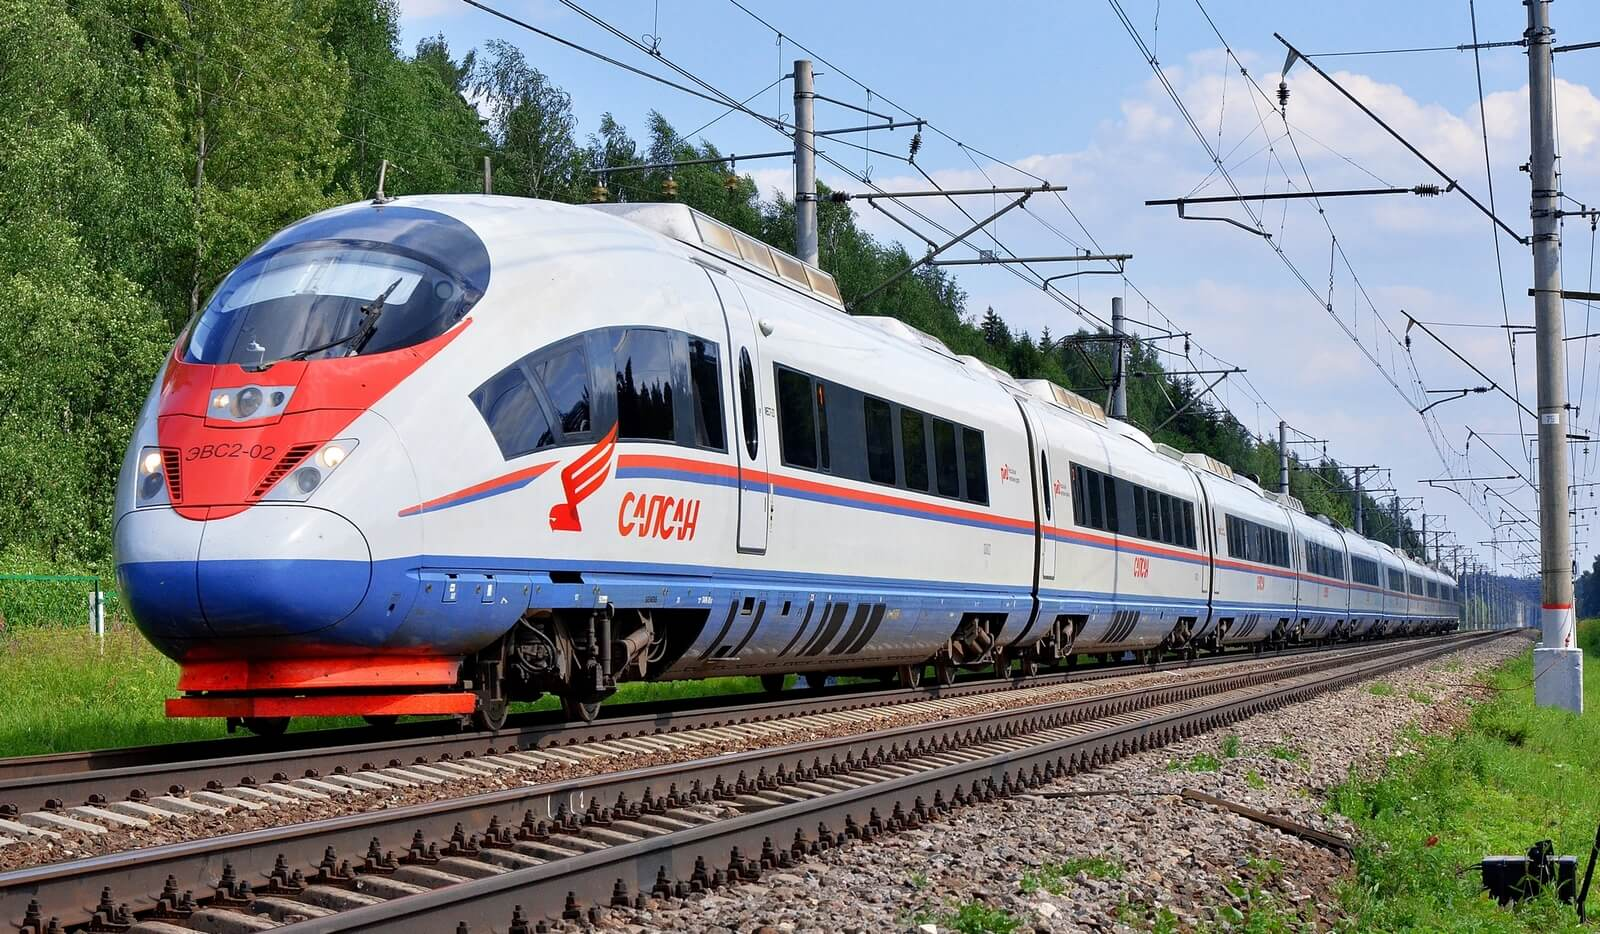 Siemens developed new algorithm for automatic high-speed train operation